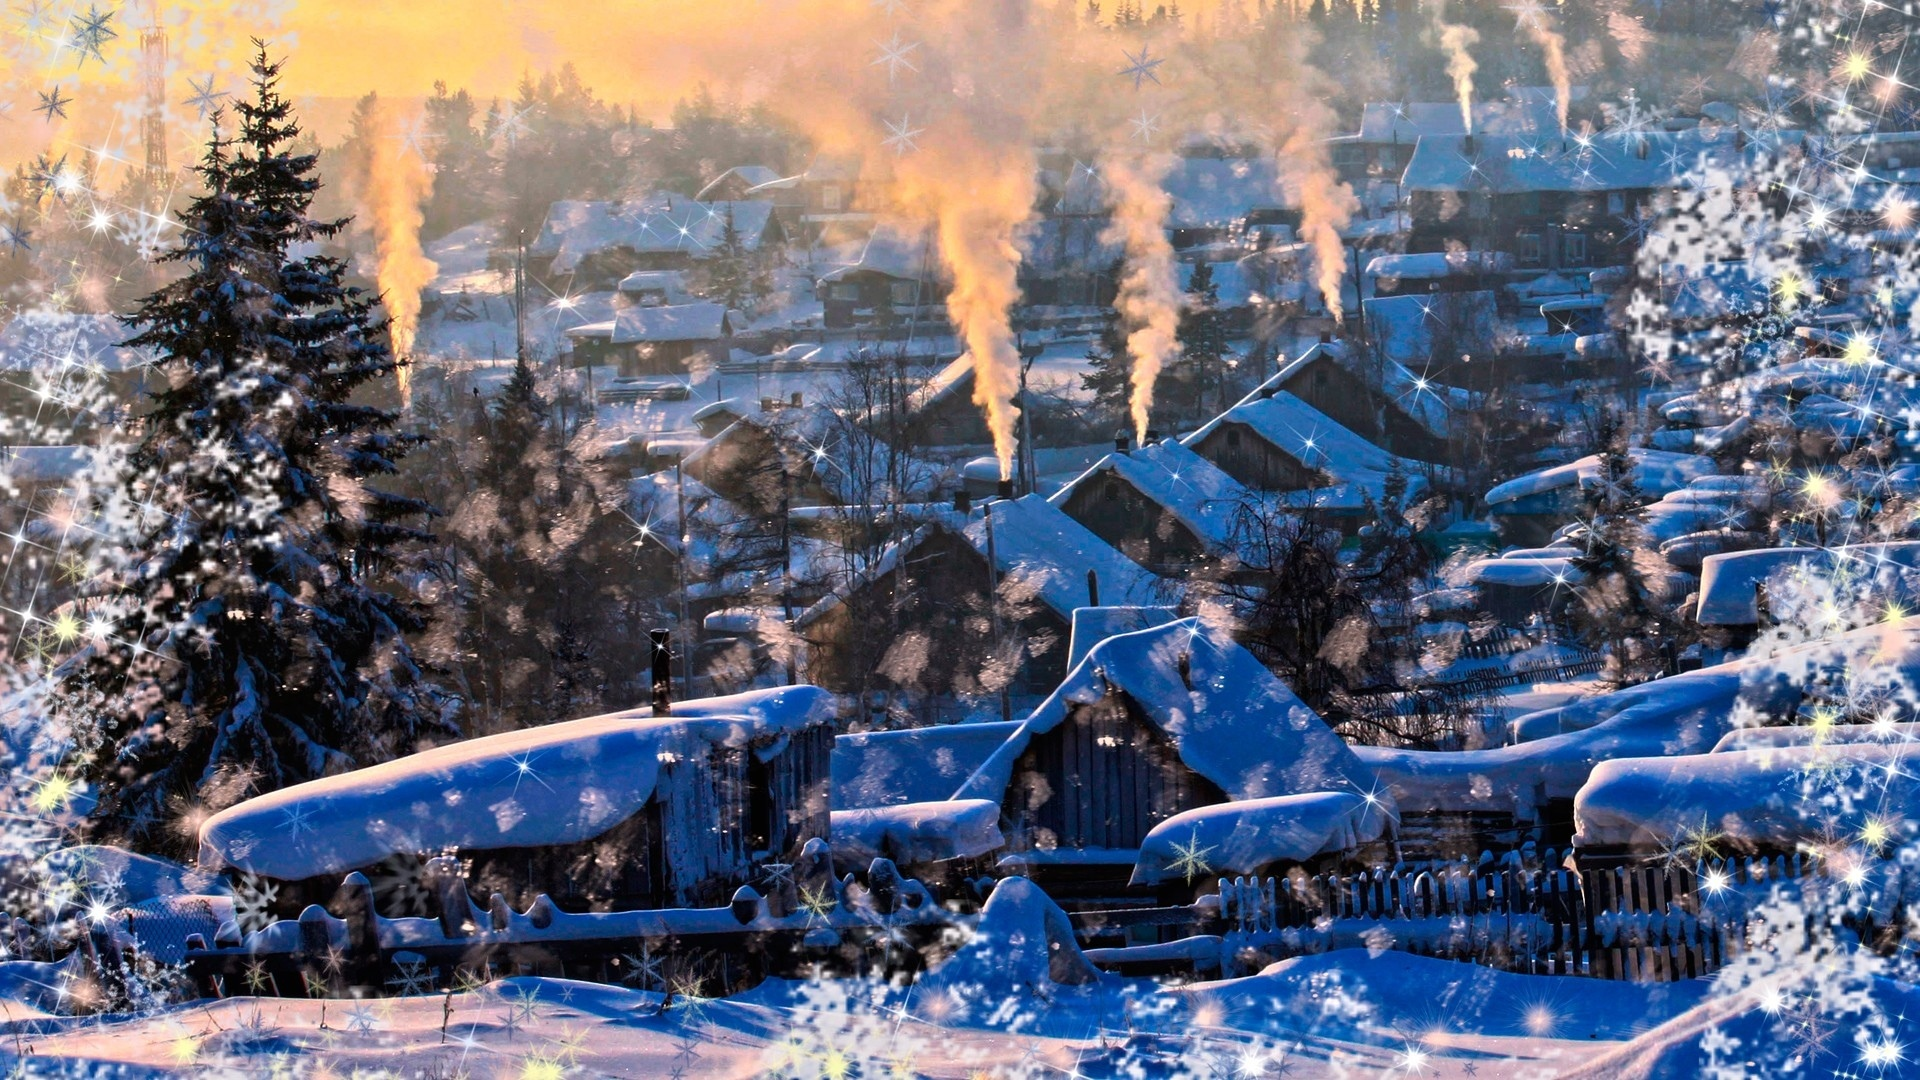 nature landscapes winter snow snowing flakes drops art artistic manipulation seasons trees architecture buildings house smoke sunset sunrise cozy christmas